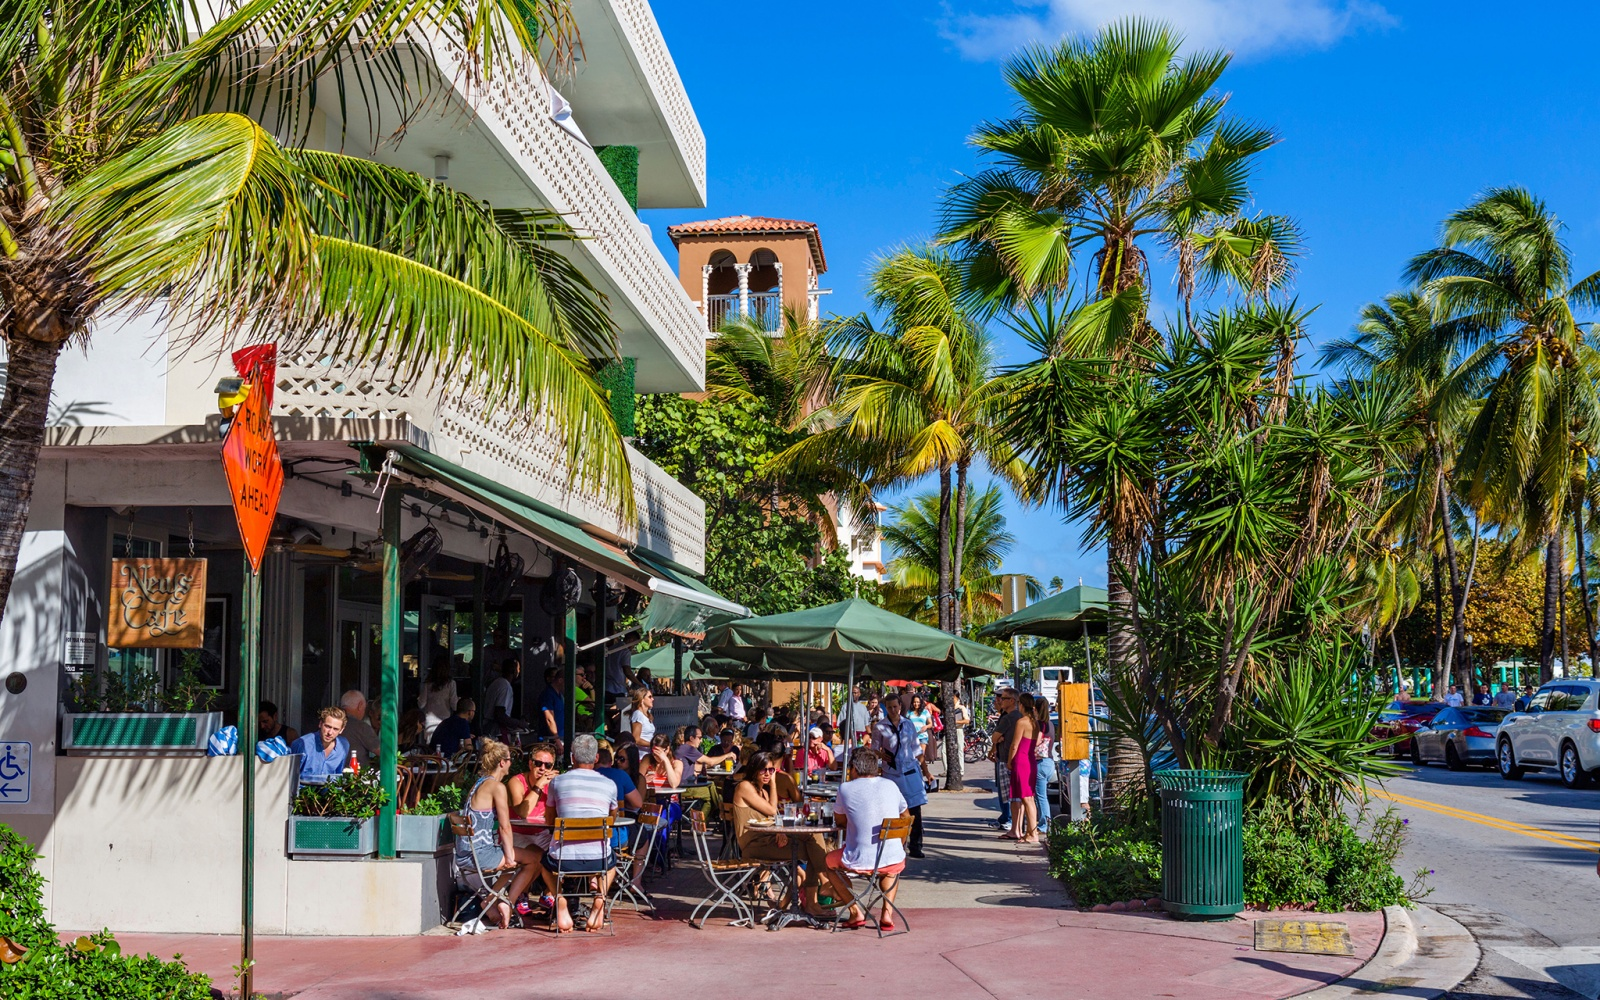 south beach sidewalk restaurant in Miami, FL